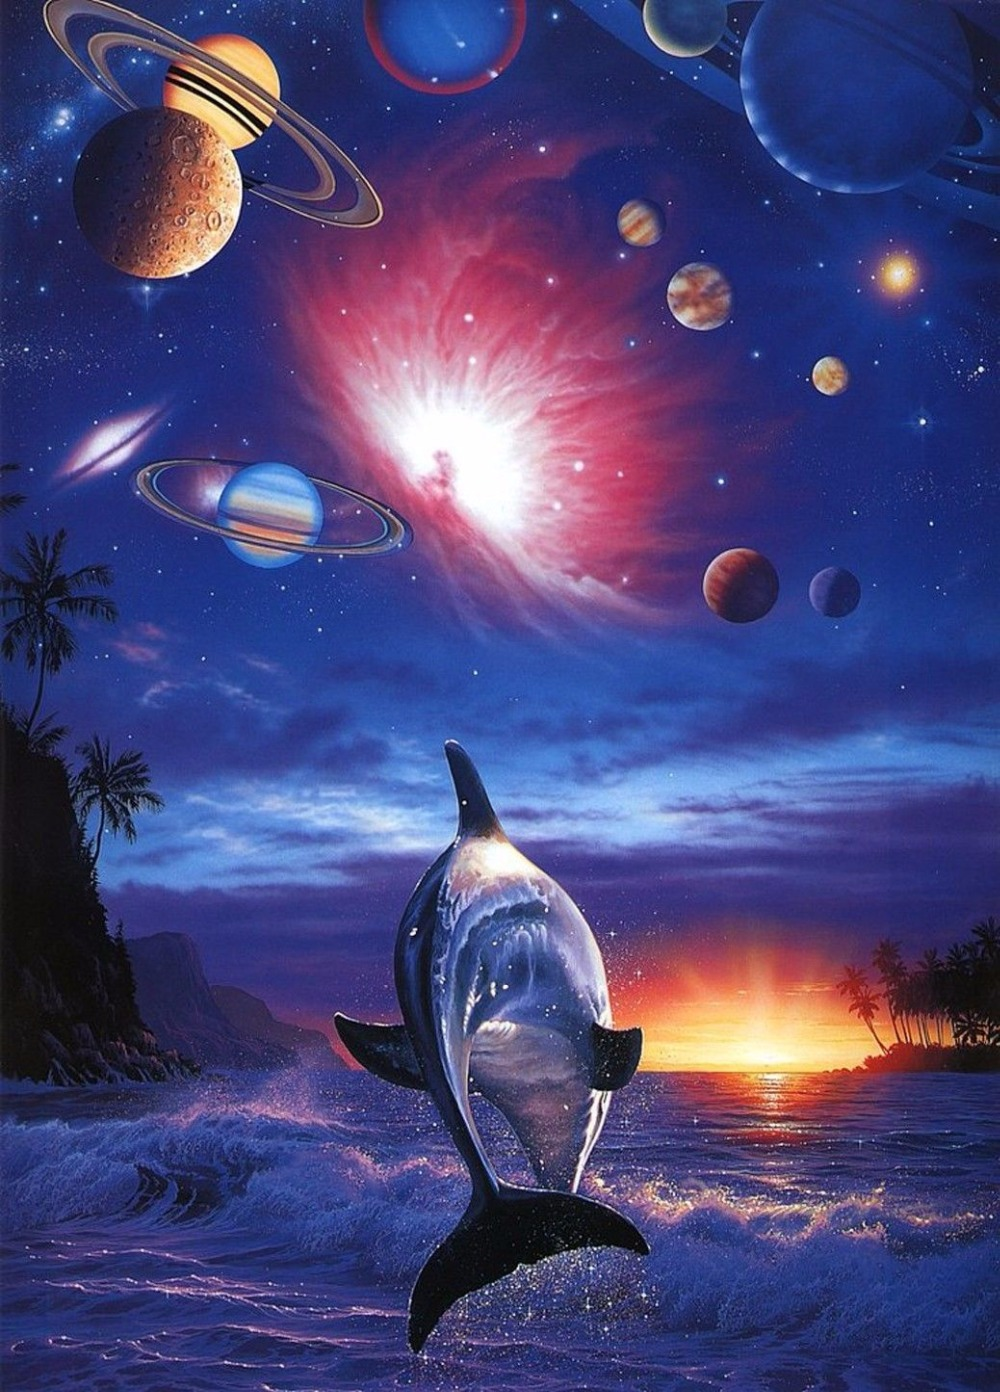 Dolphin Cosmic Planetary Space Silk Poster Art Bedroom Decoration  2556(China (Mainland))